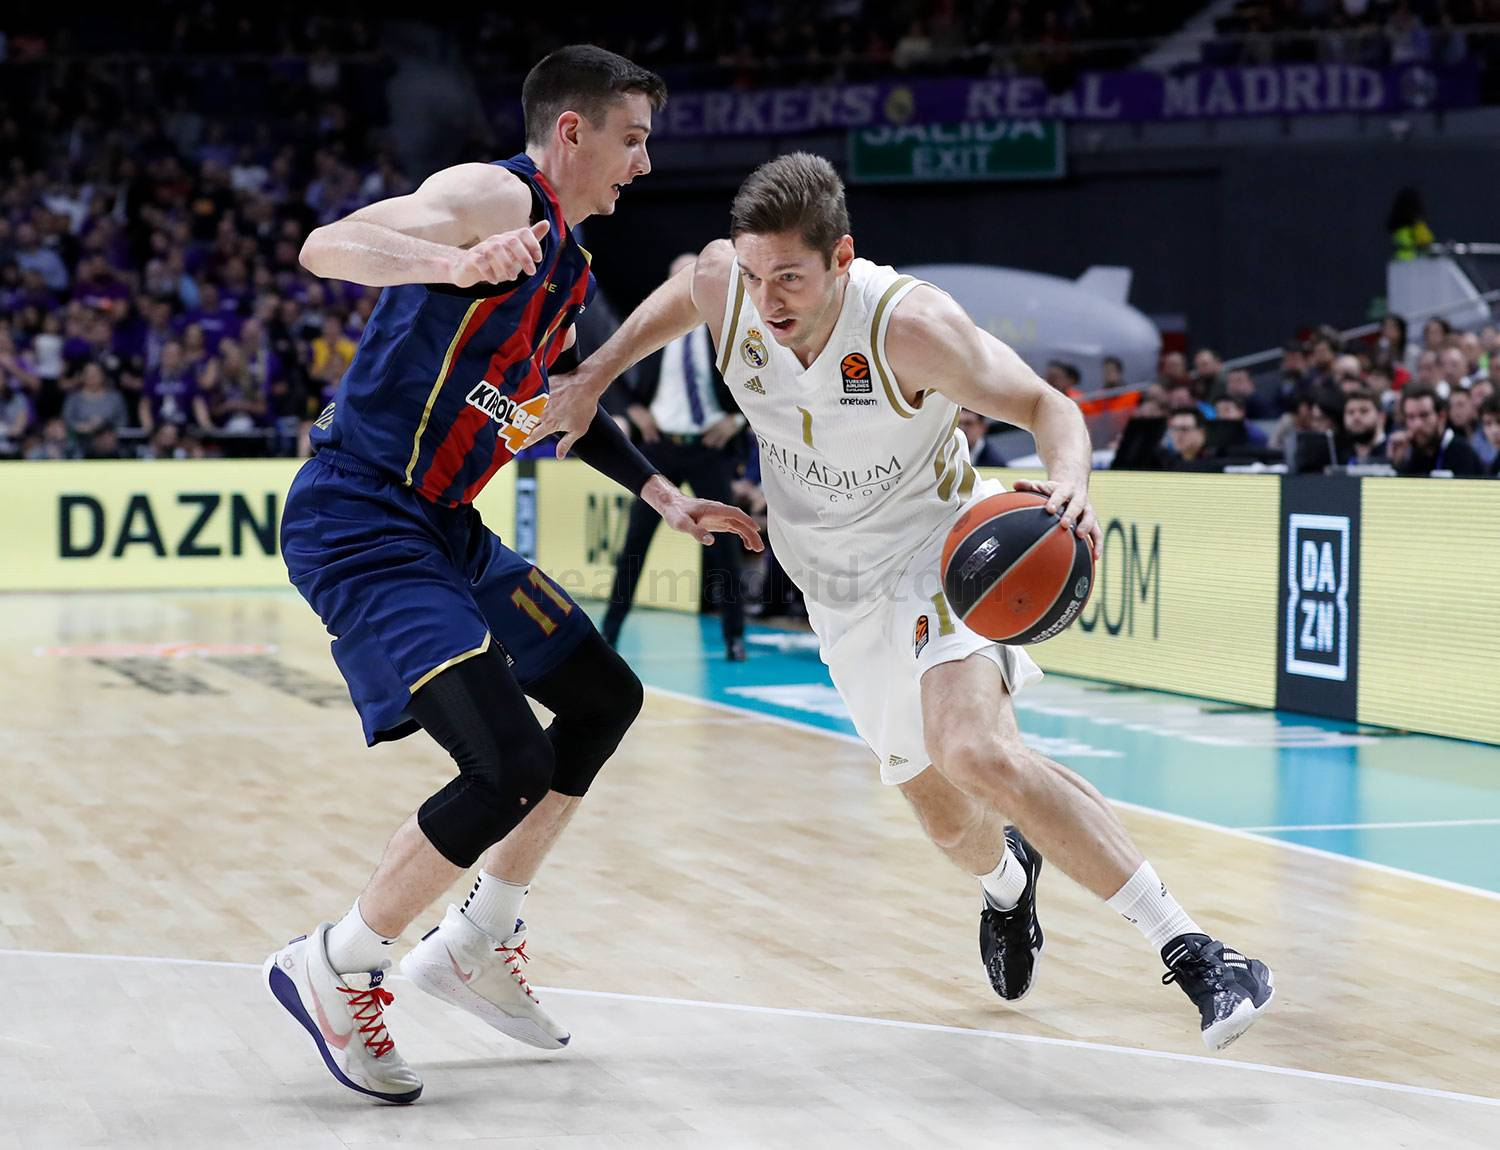 Real Madrid - Real Madrid - KIROLBET Baskonia - 04-02-2020